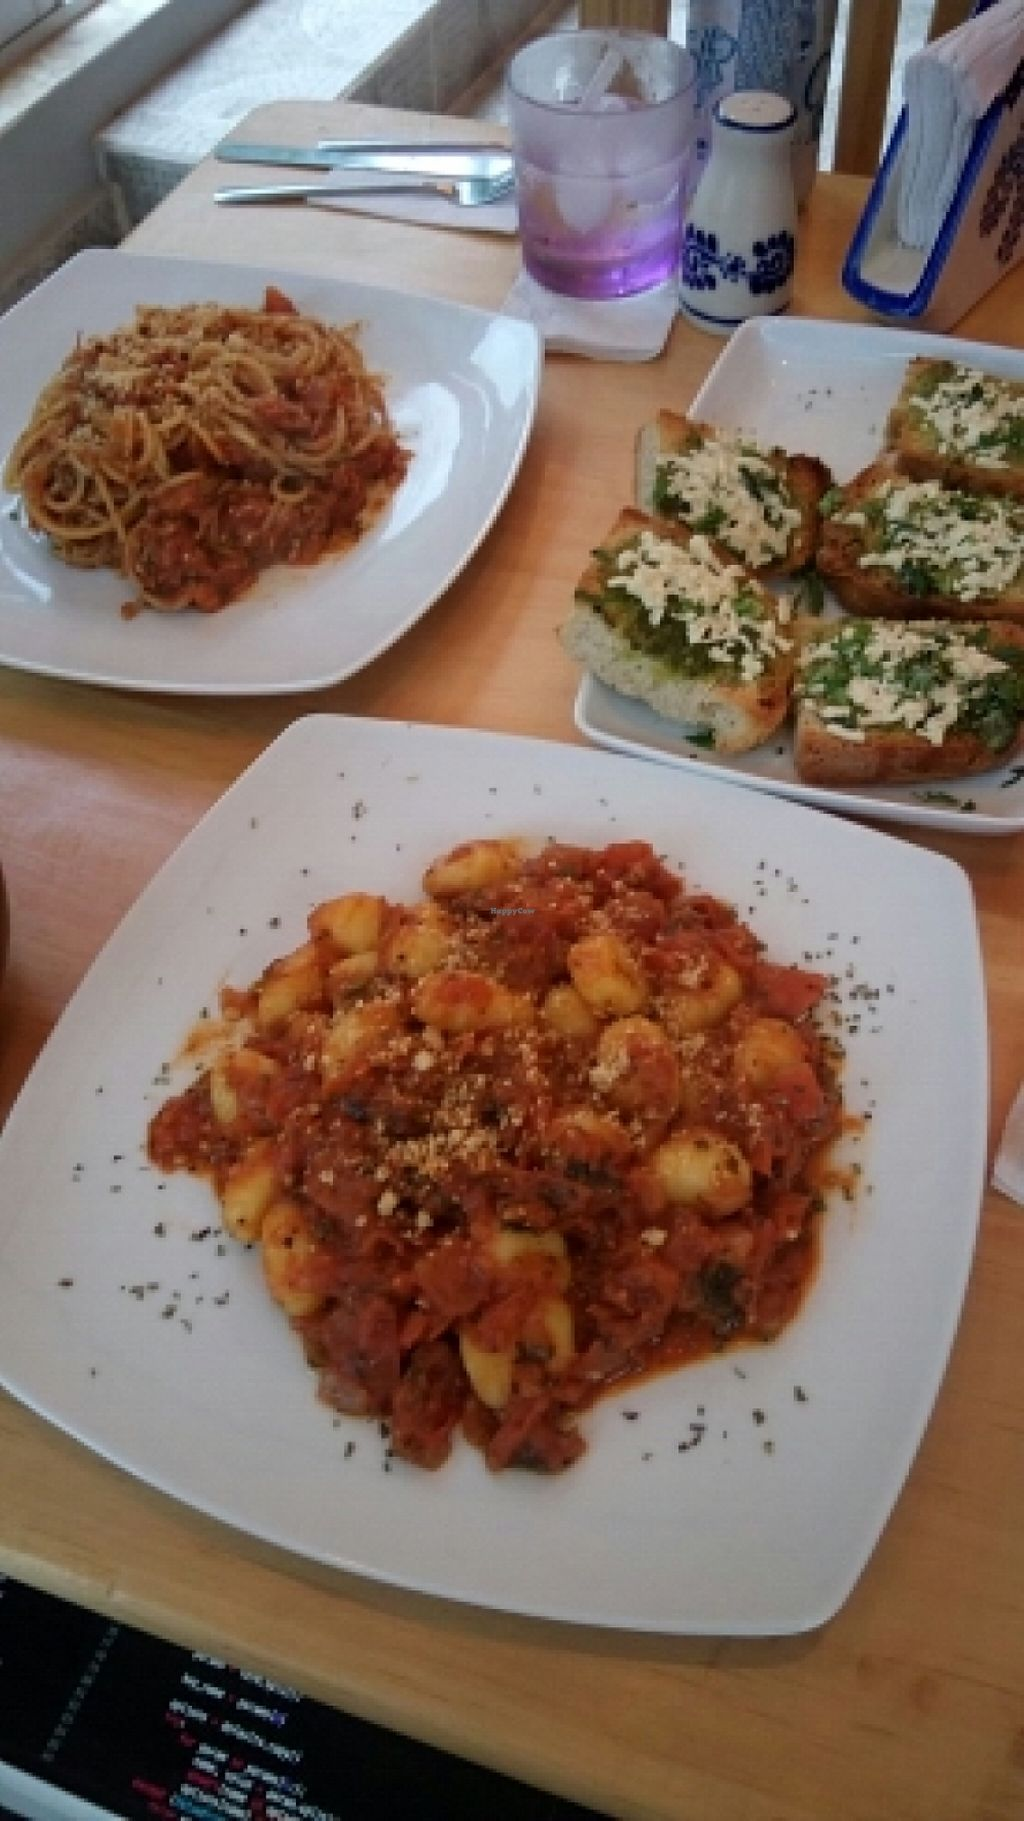 """Photo of CLOSED: Mashke Vegan Bar  by <a href=""""/members/profile/alicus"""">alicus</a> <br/>Gnocci, Spaghetti and Garlic Bread <br/> January 24, 2016  - <a href='/contact/abuse/image/68670/186192'>Report</a>"""